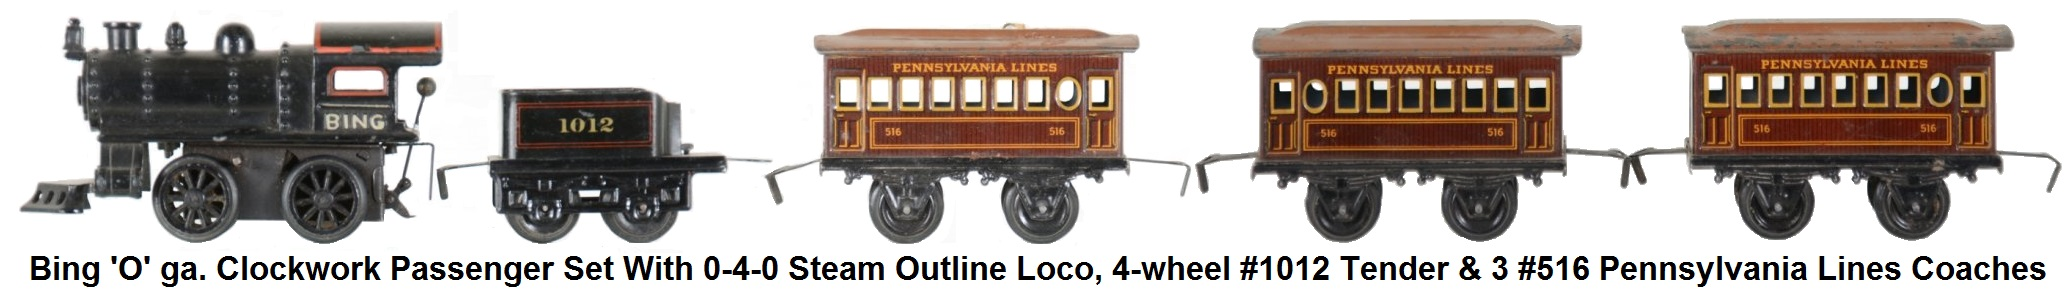 Bing 'O' gauge clockwork passenger set made for American market with diecast 0-4-0 steam outline loco, #1012 tender and 3 #516 Pennsylvania Lines coaches